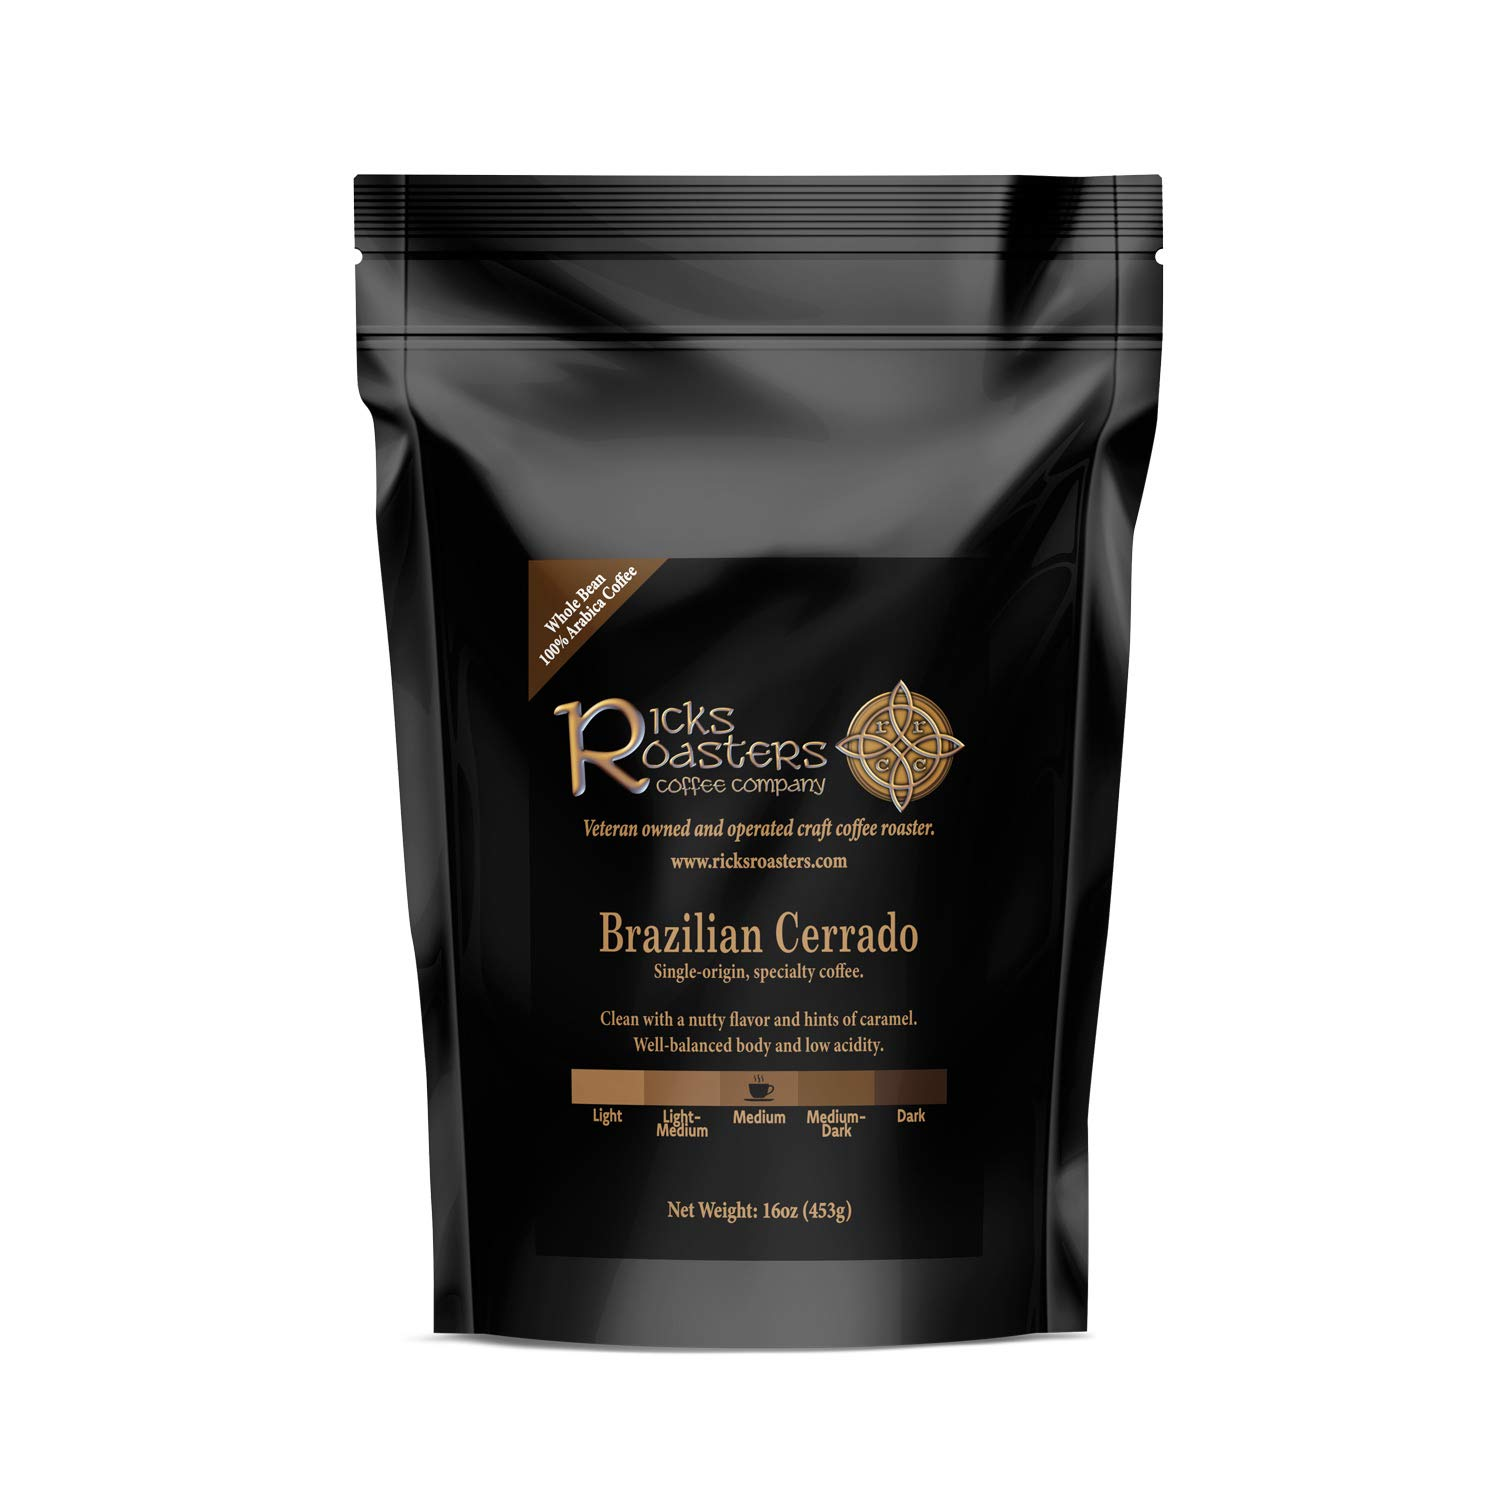 Ricks Roasters Coffee | Brazil Cerrado Single-Origin Specialty Coffee | 1 Pound (1 lb) Whole Bean | Fair Trade Medium Roast | USA Veteran Owned & Operated